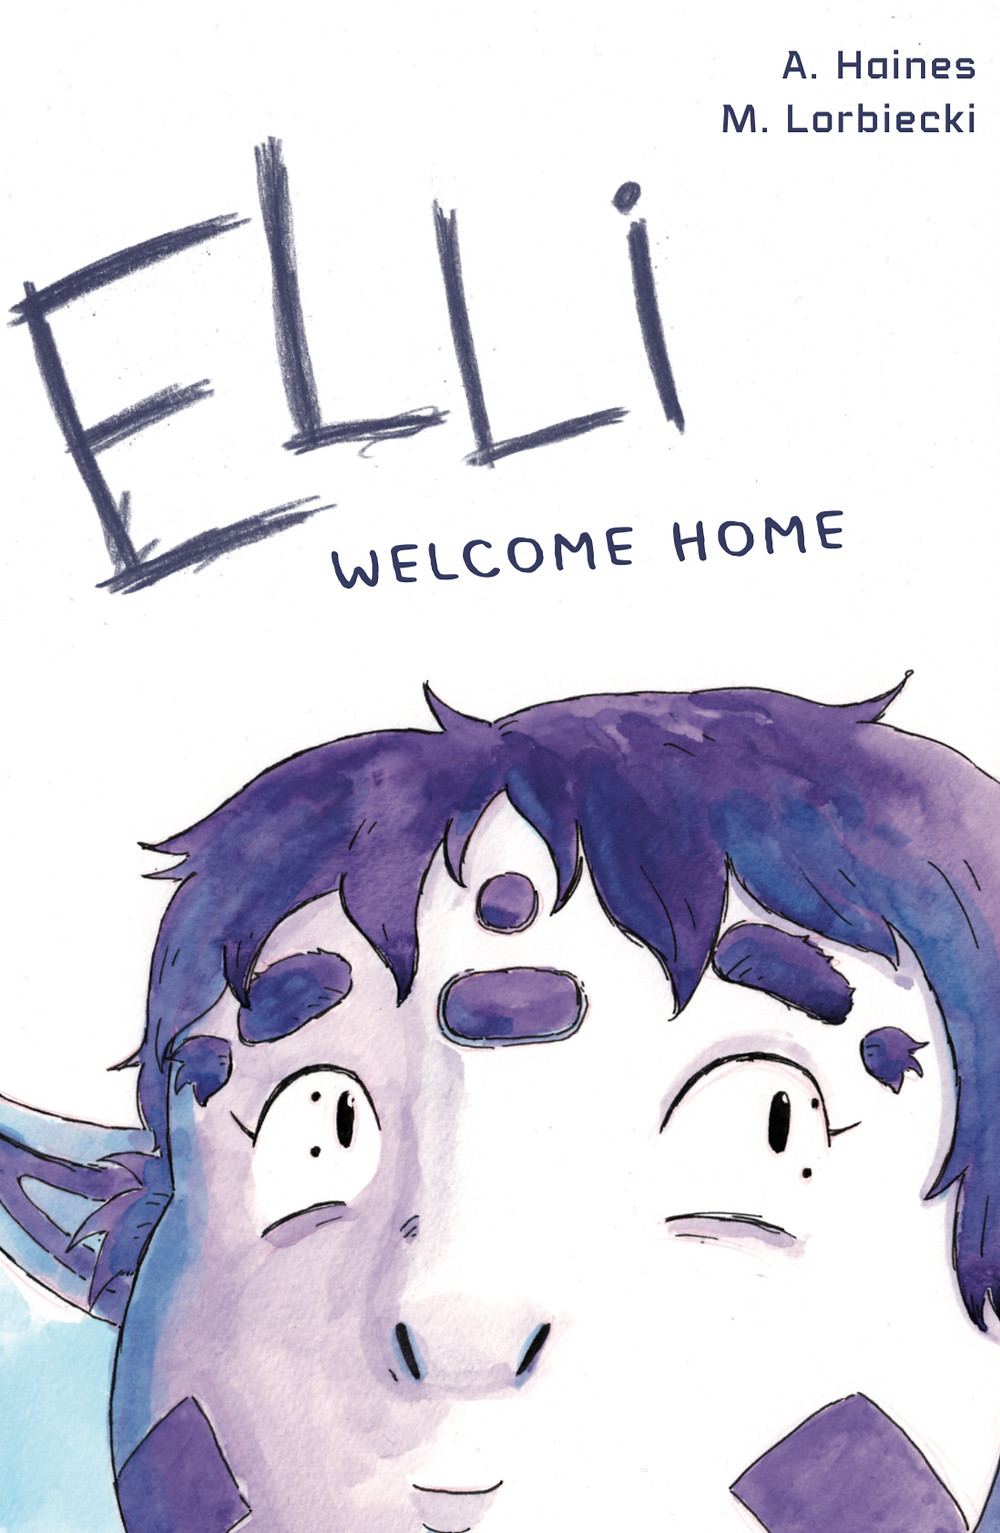 Elli, issue #1, cover, self-published, Haines/Lorbiecki